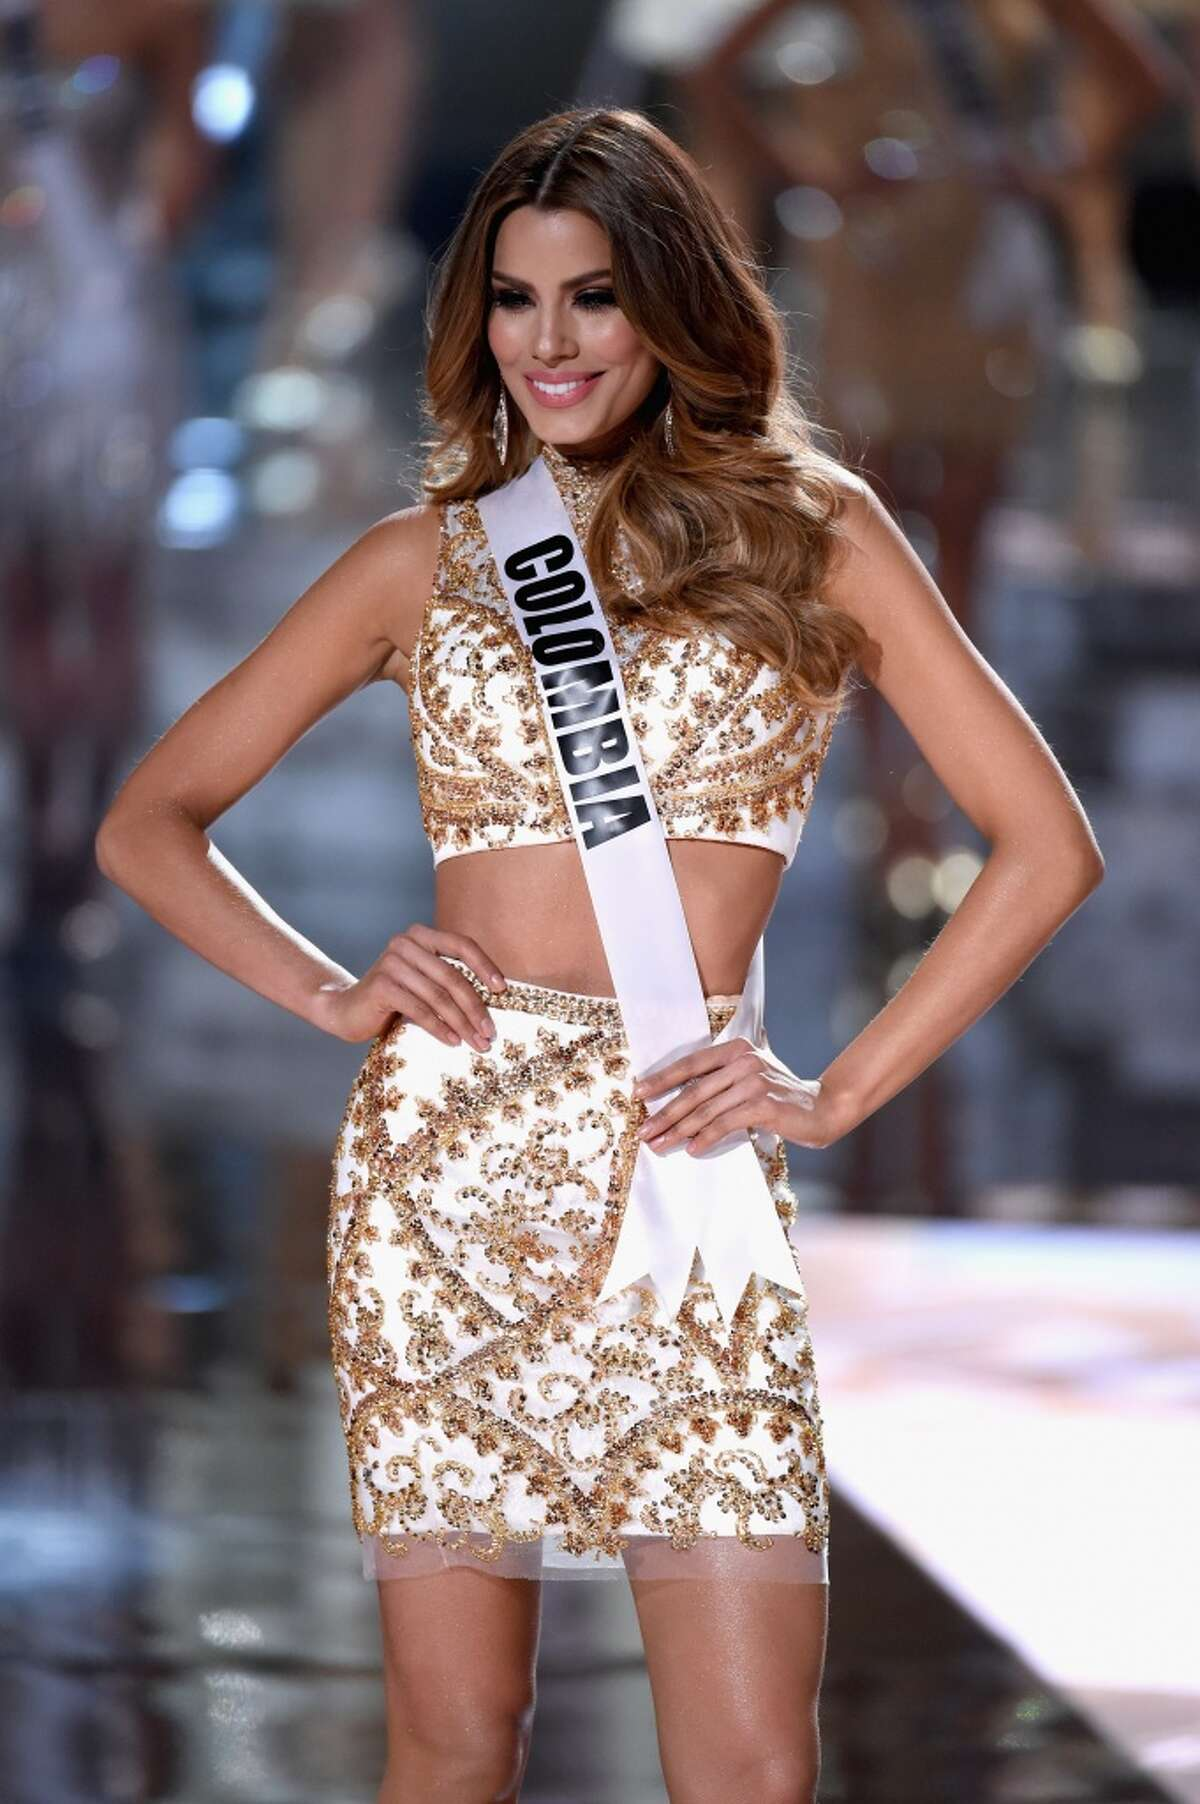 Miss Colombia 2015, Ariadna Gutierrez, during the 2015 Miss Universe Pageant.